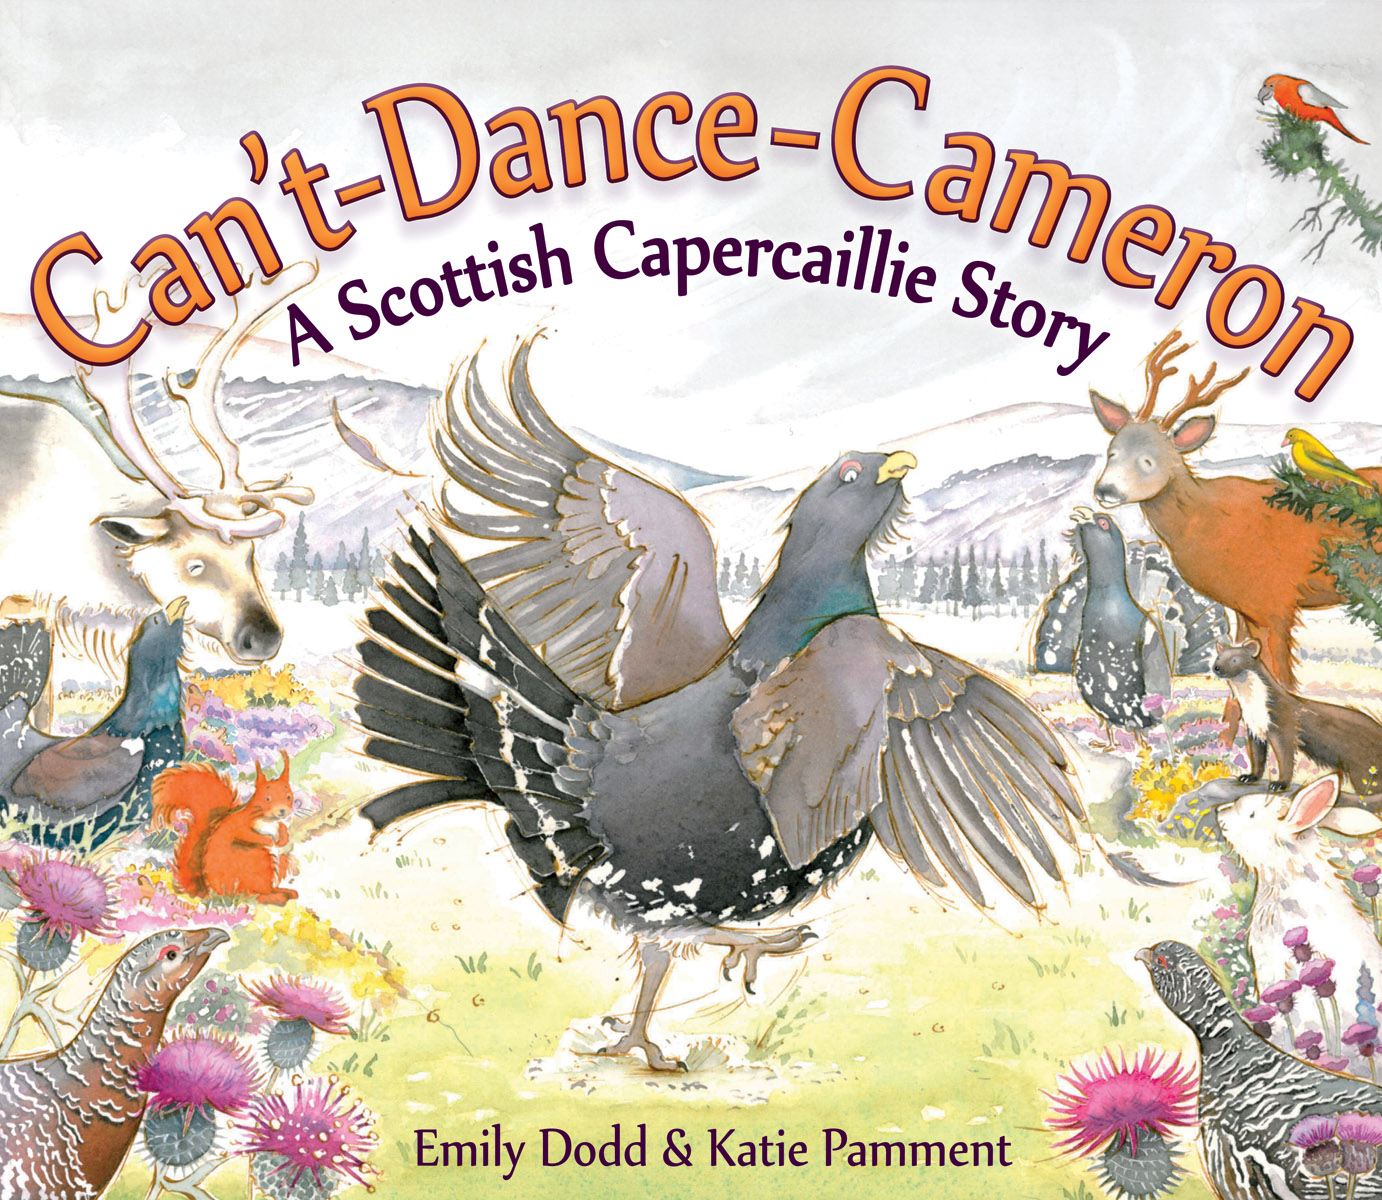 cantdancecamcover